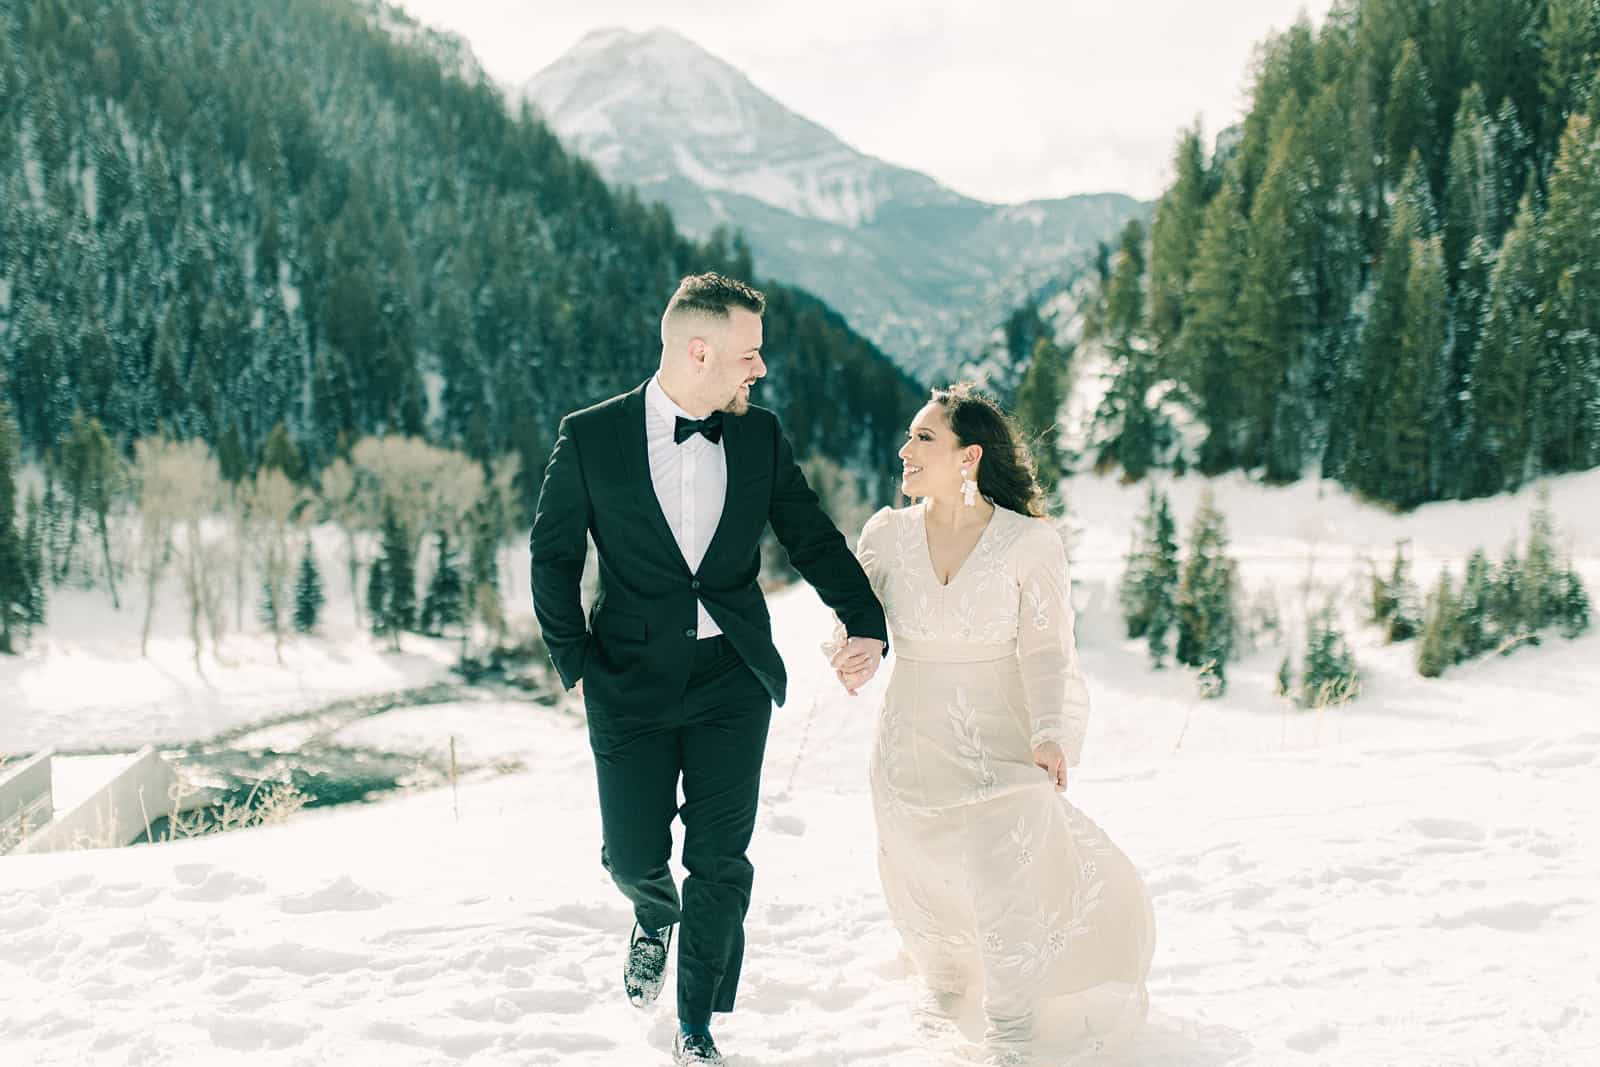 bride and groom walking on winter mountain